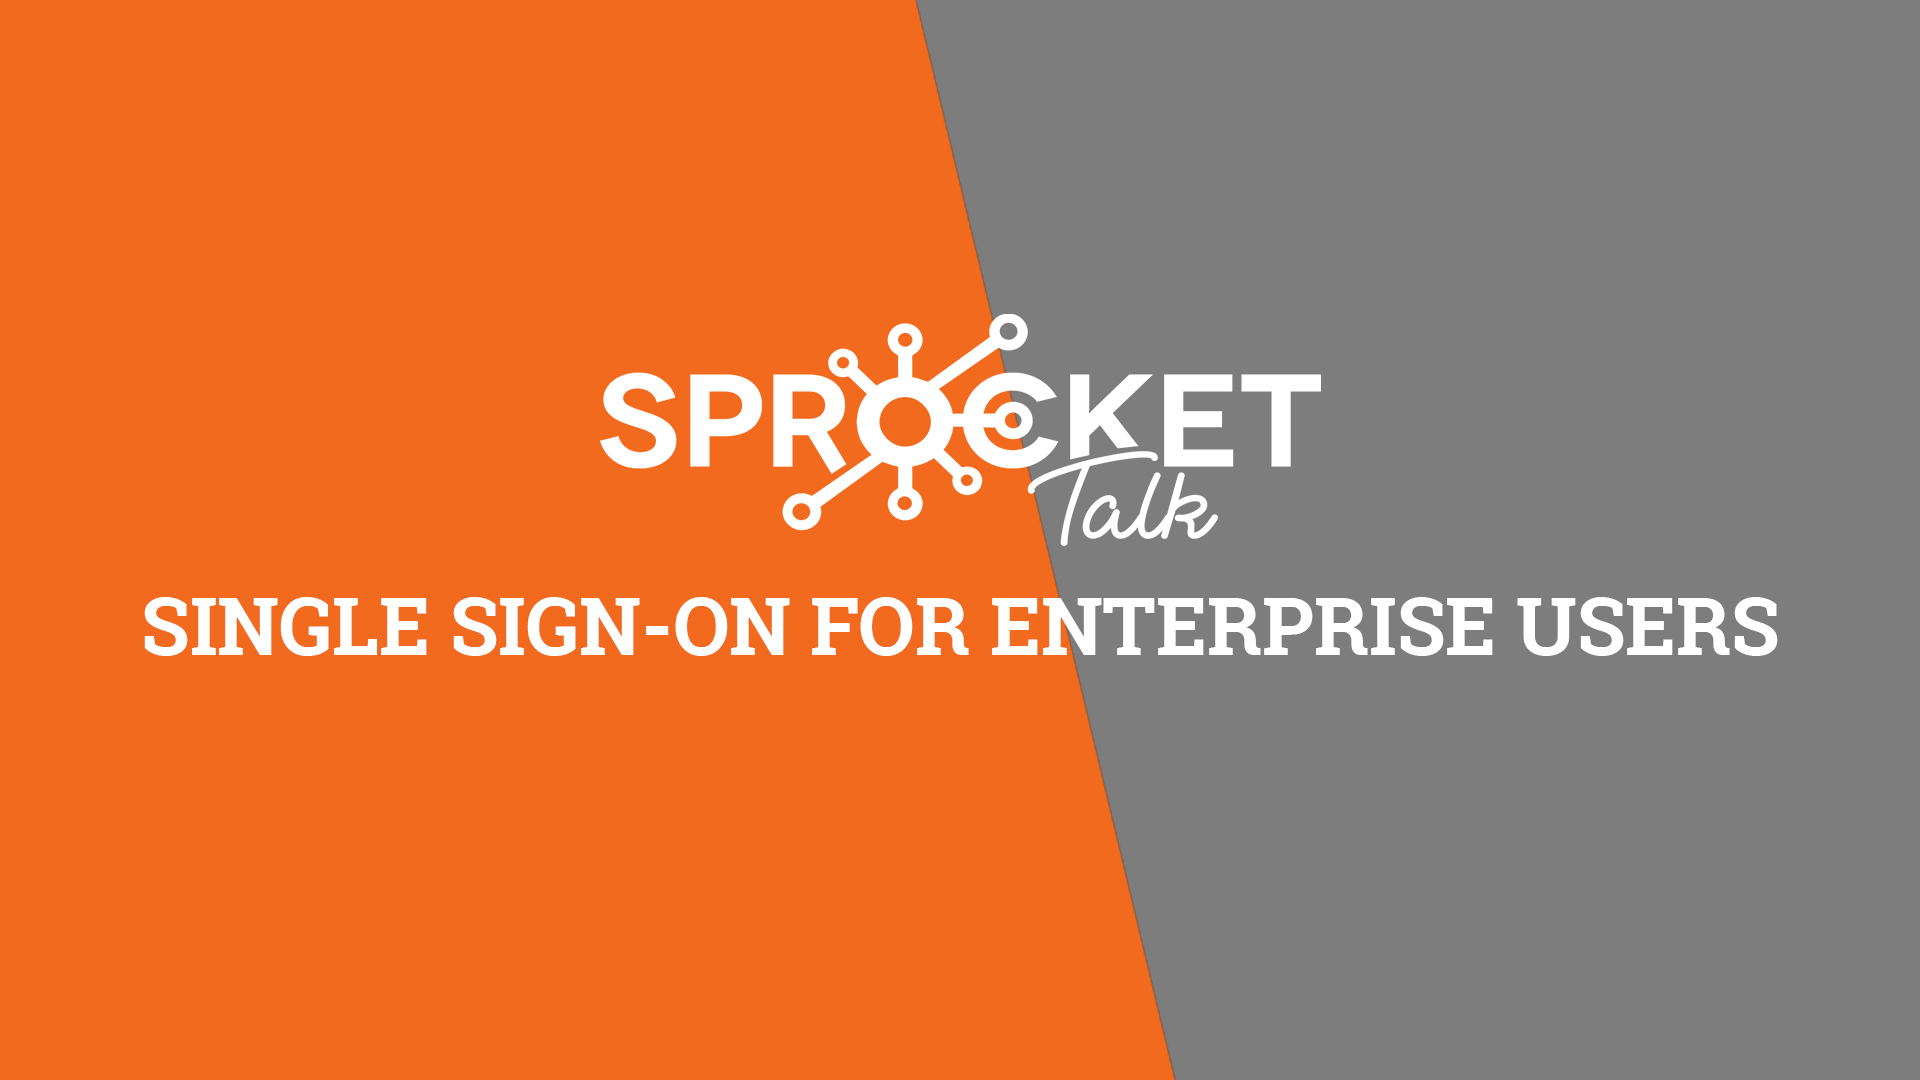 Single Sign-on For Enterprise Users